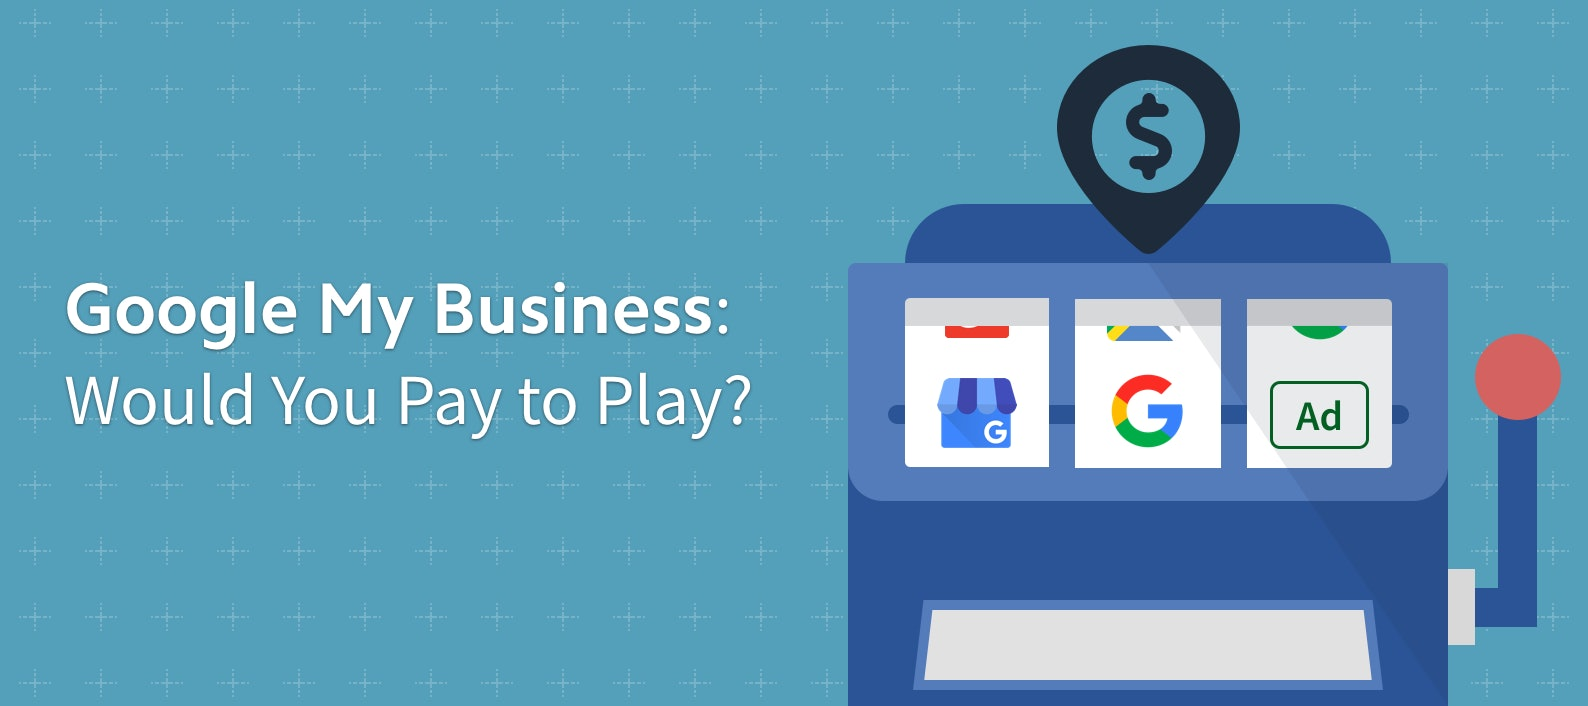 Google My Business: Would You Pay to Play?